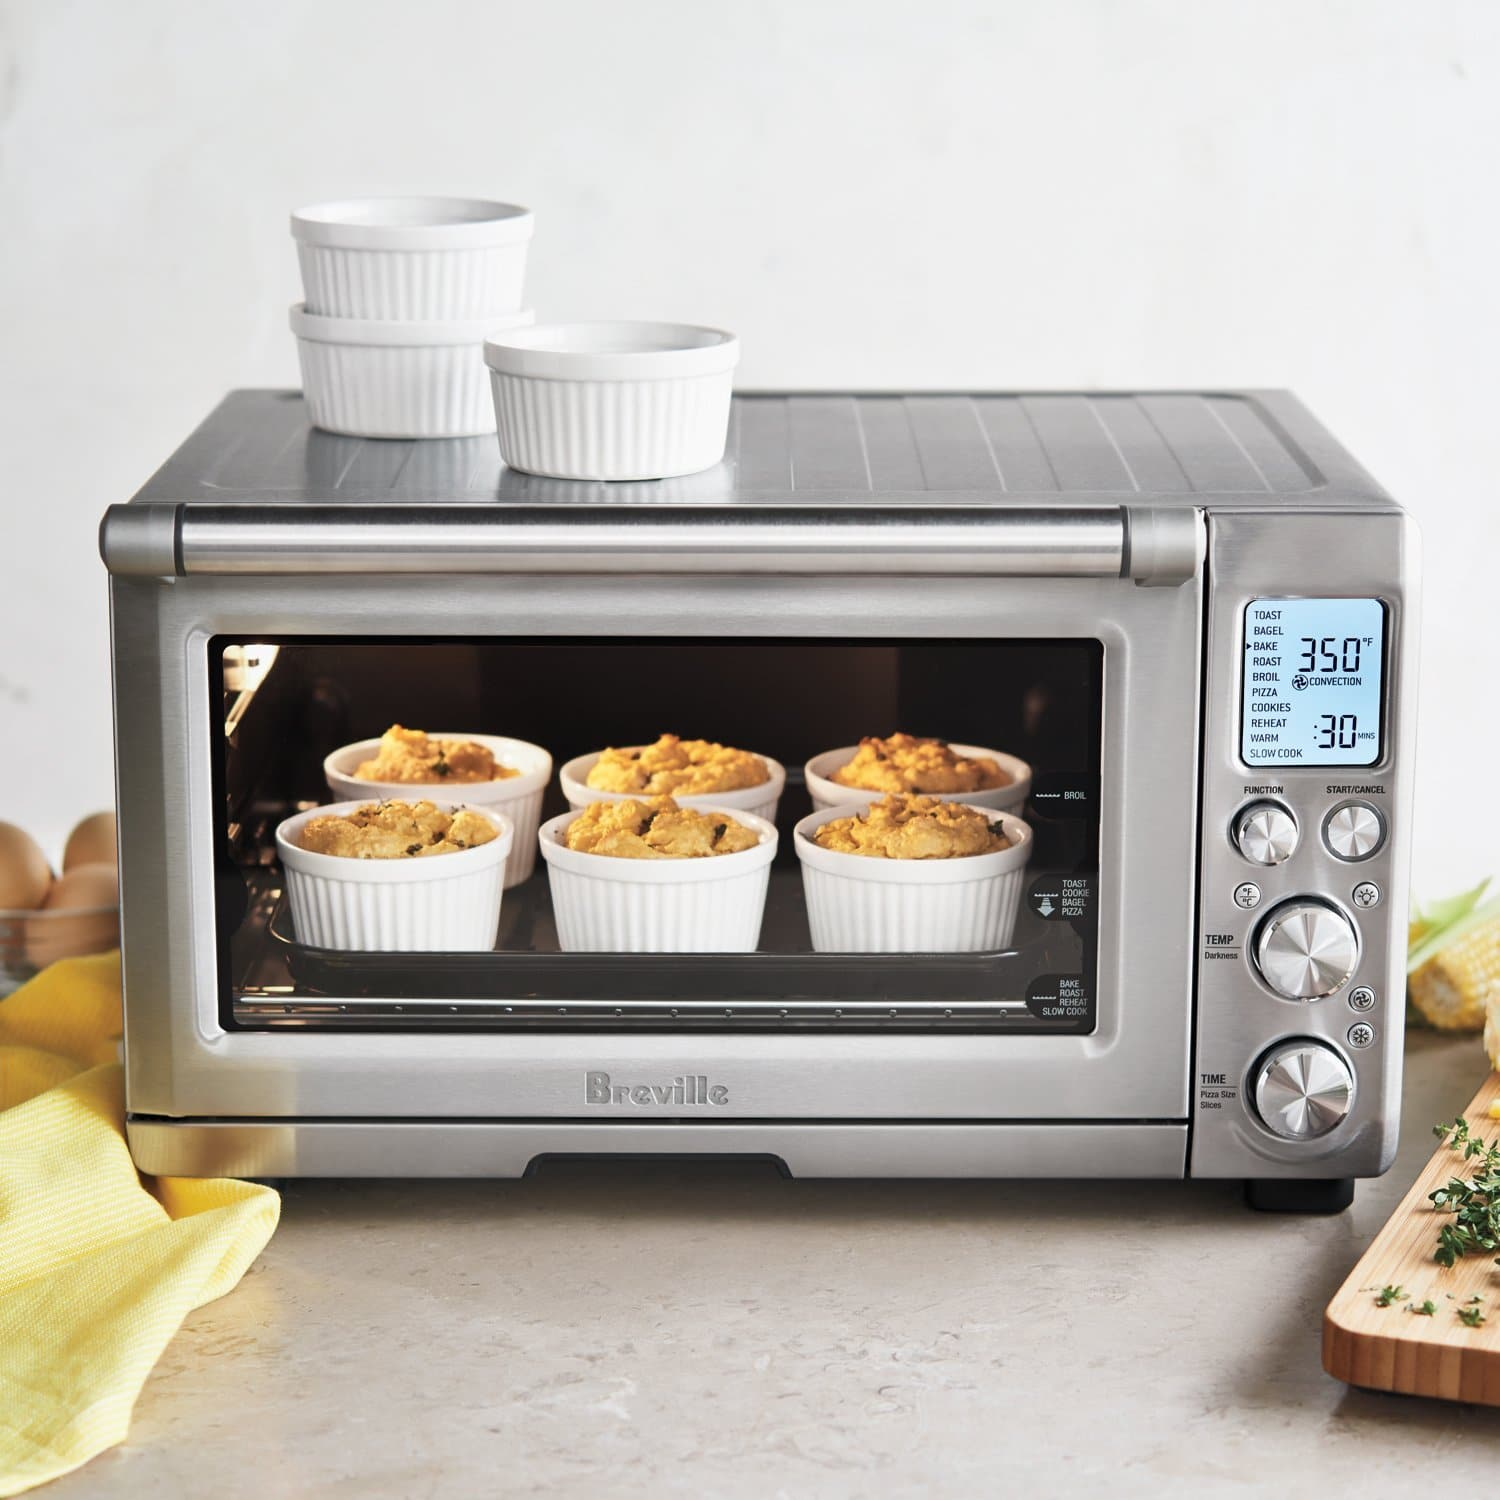 Professional Countertop Convection Oven Reviews : Breville BOV845BSS Smart Oven Pro Review ? Updated 2017 ...